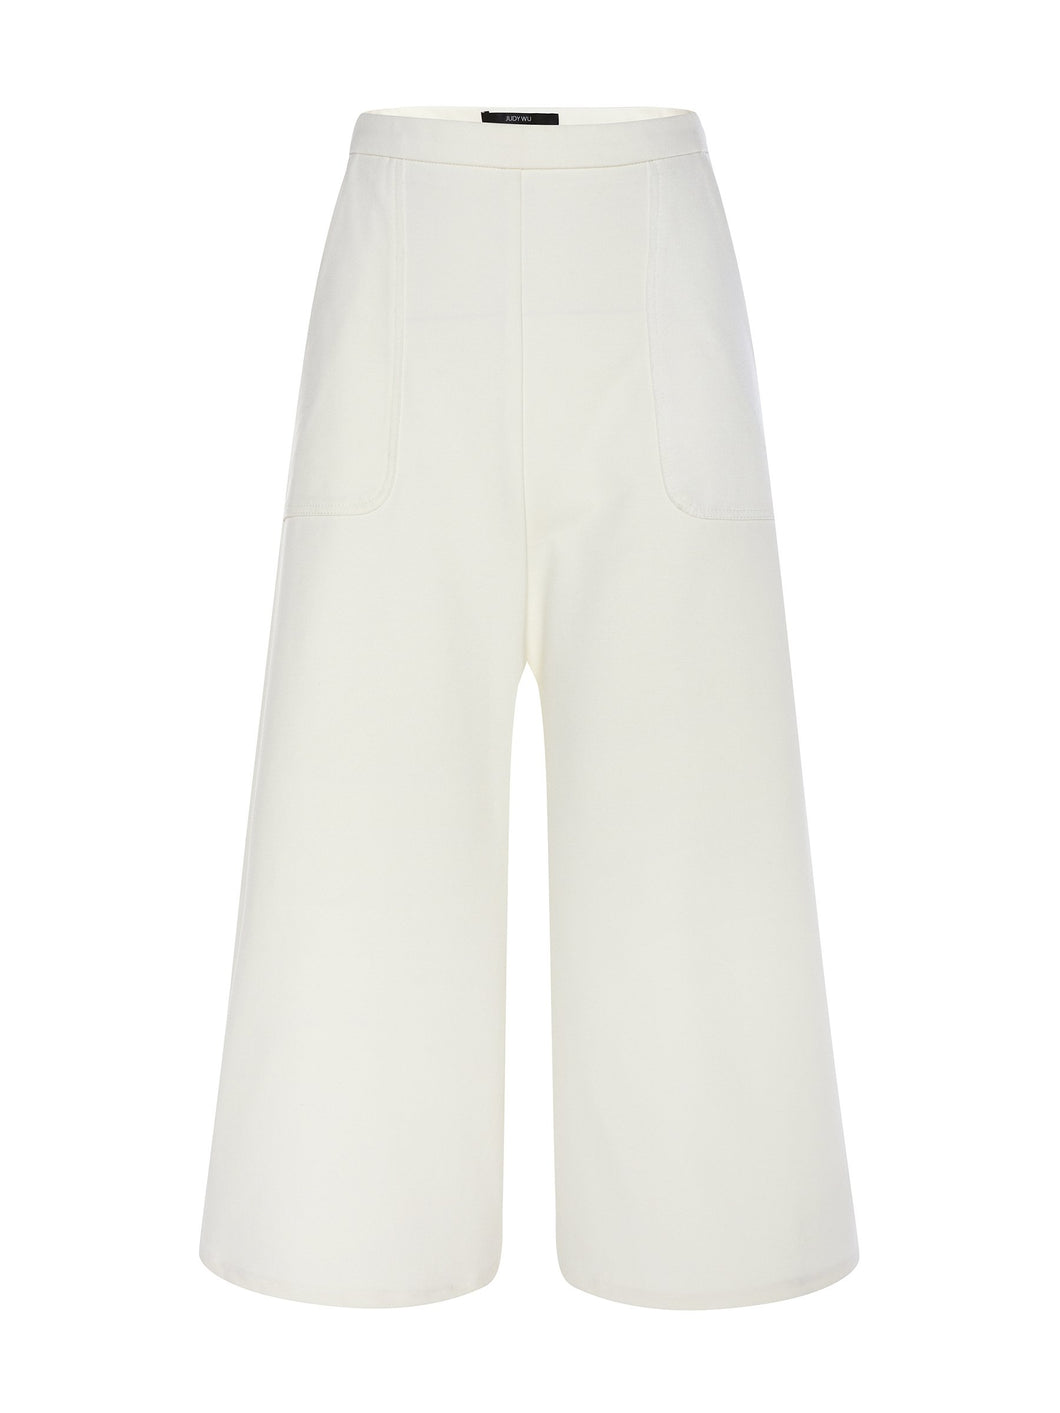 Ponte Roma 3/4 Lounge Culottes in White